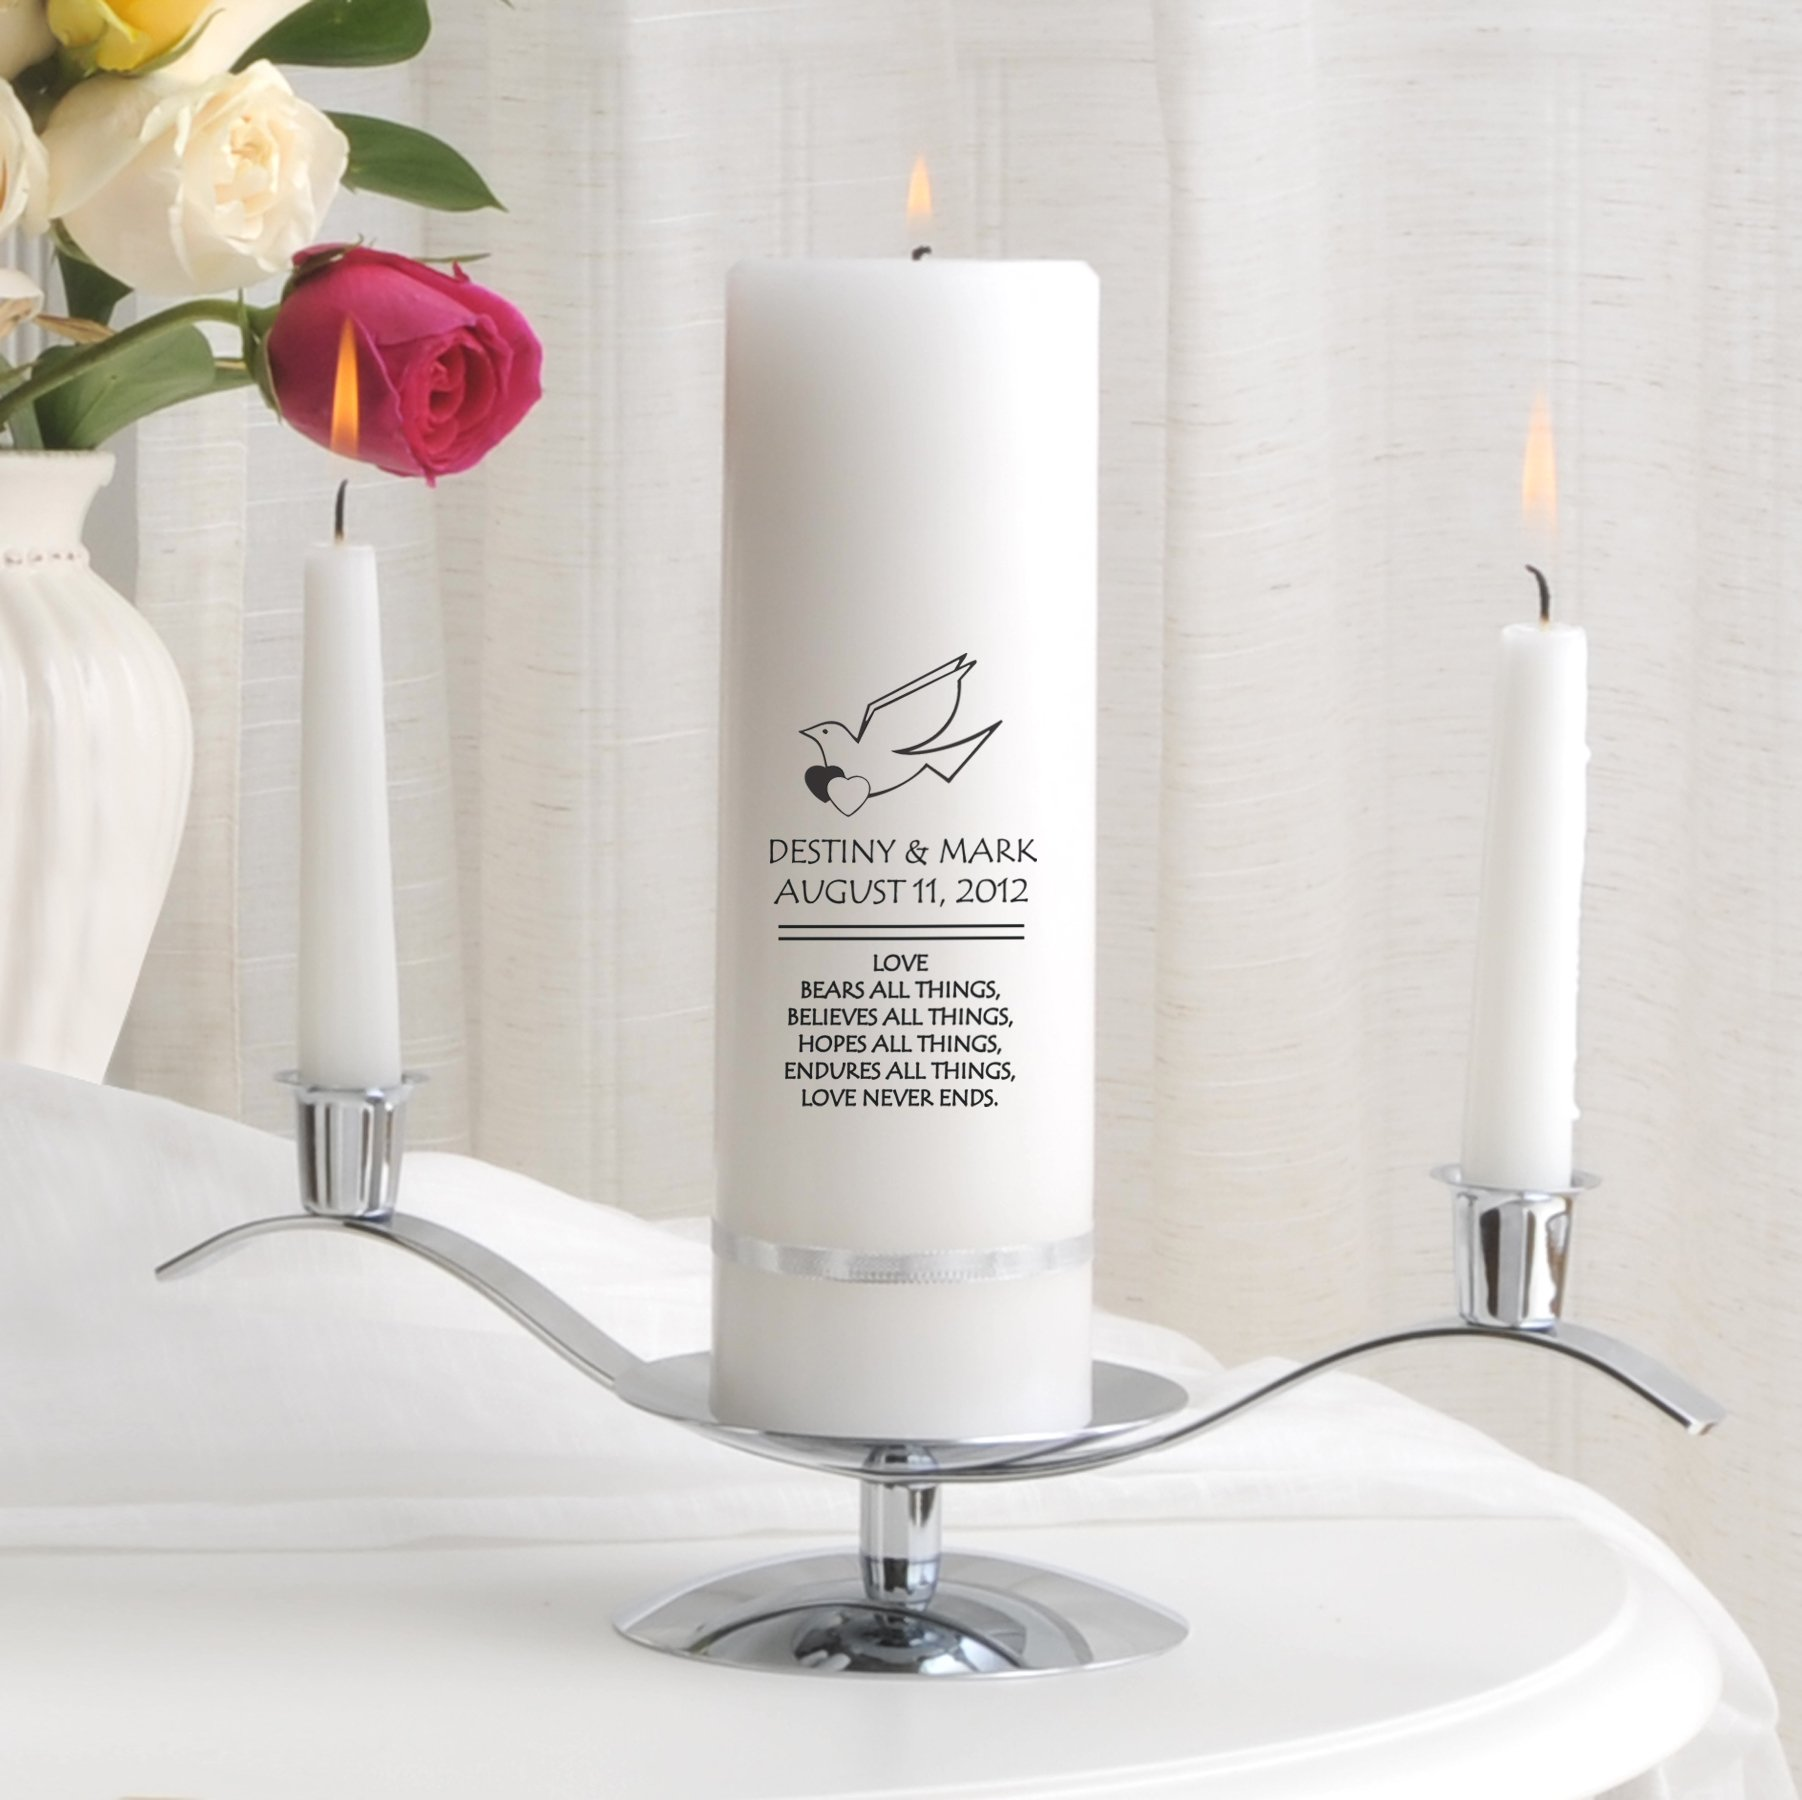 Personalized Wedding Unity Candle - Personalized Unity Candle Set - Imperial